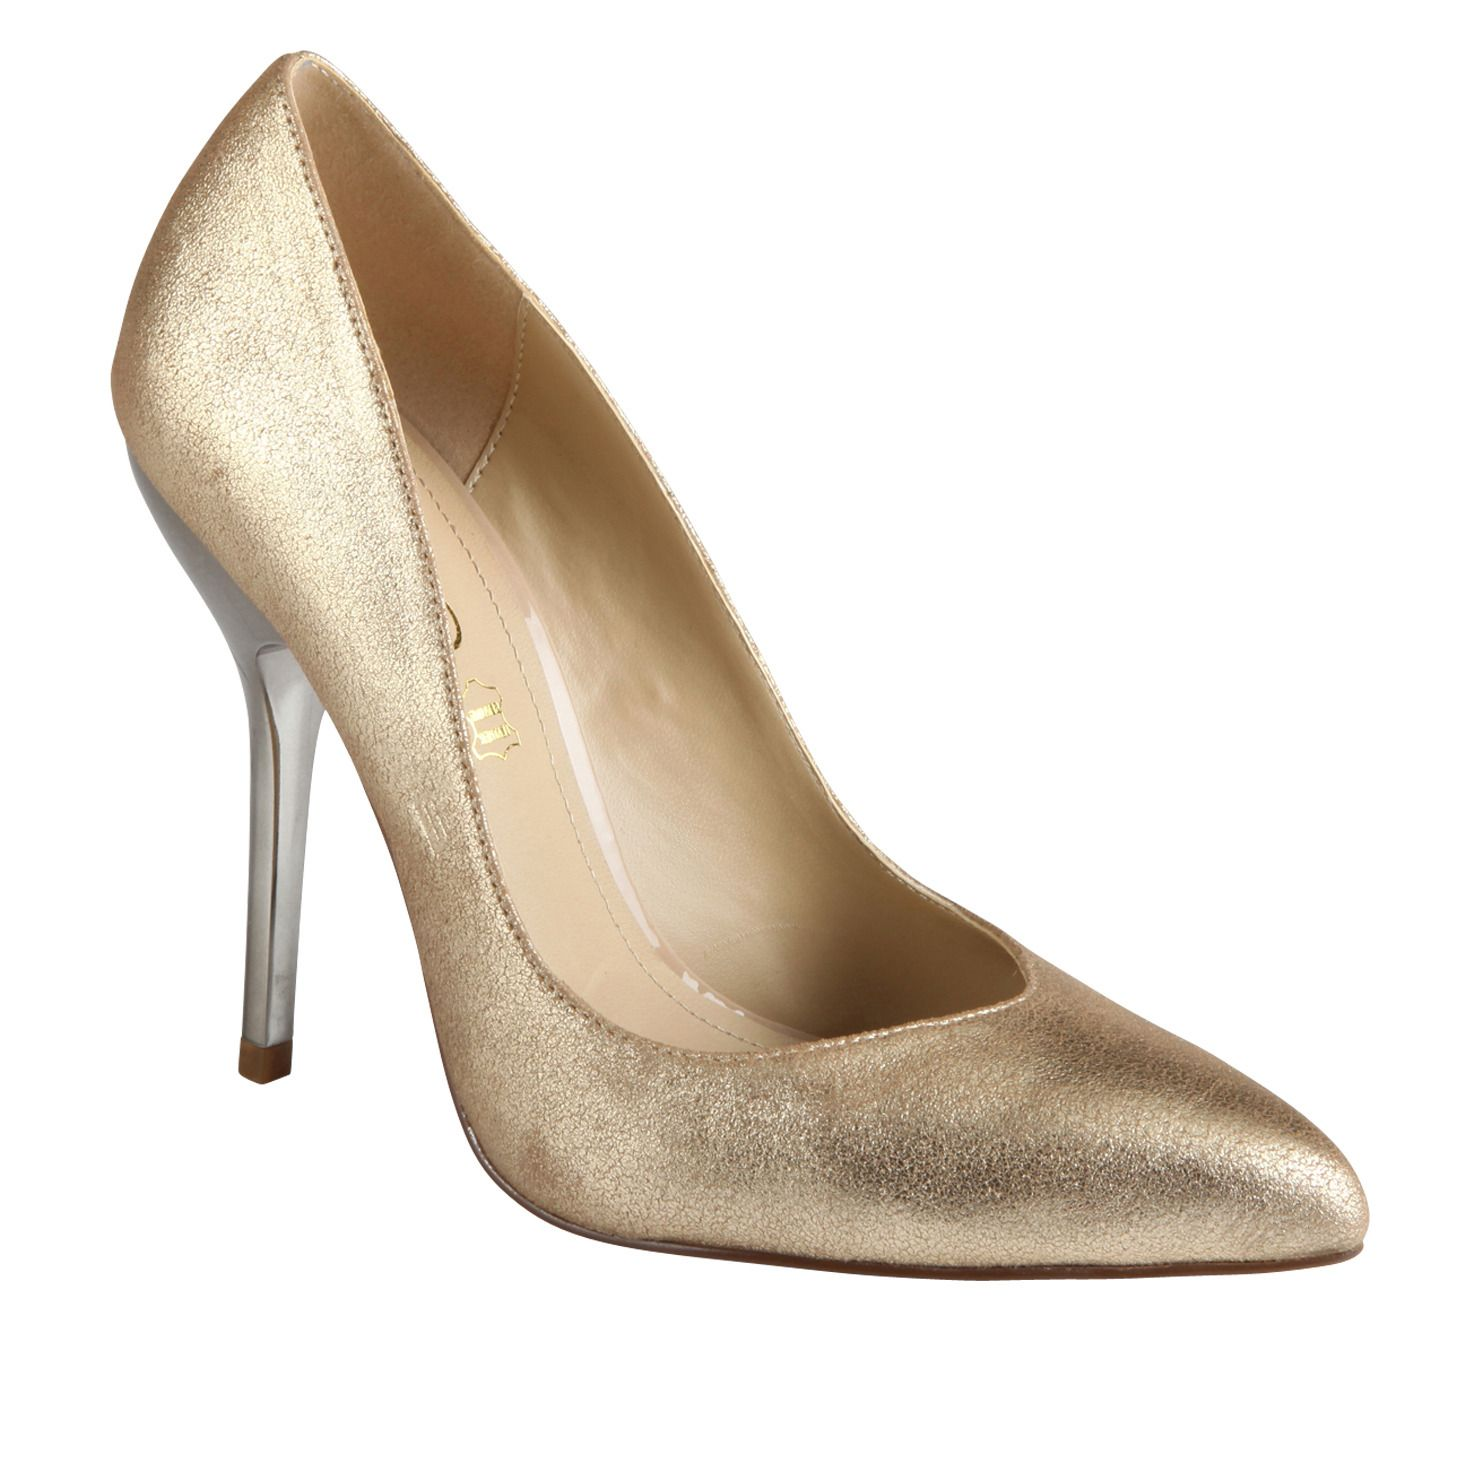 ROBERGE - women's high heels shoes for sale at ALDO Shoes.